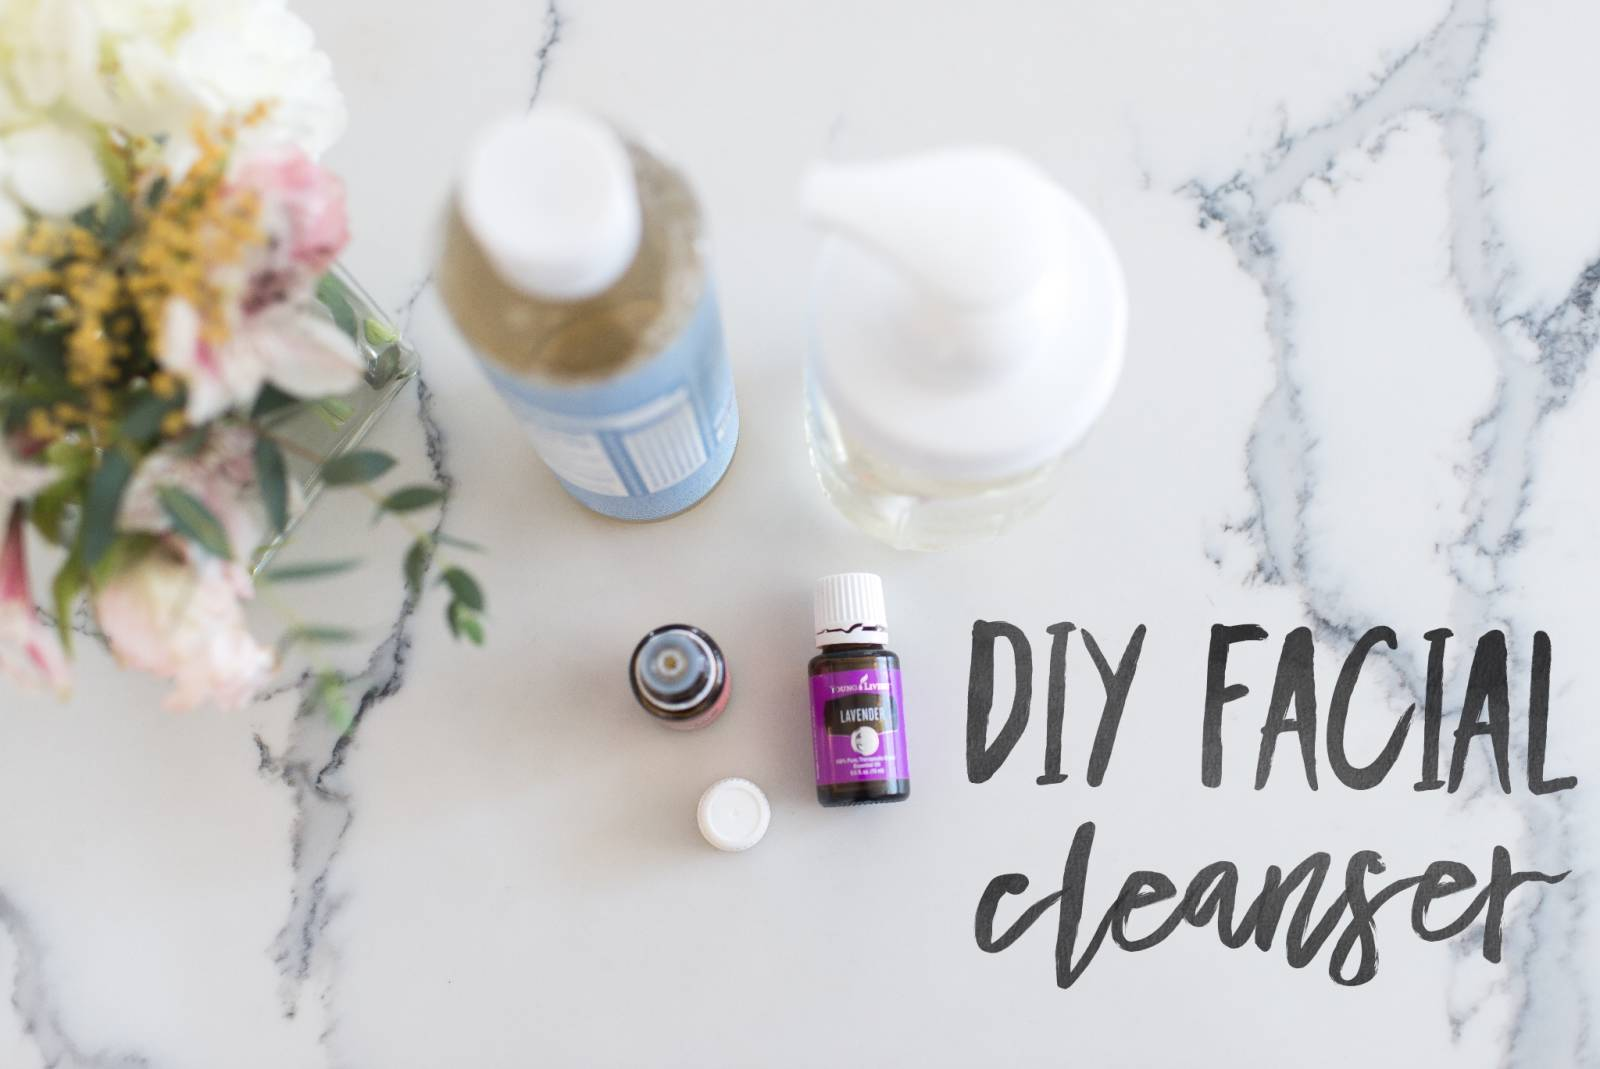 DIY Facial Cleanser